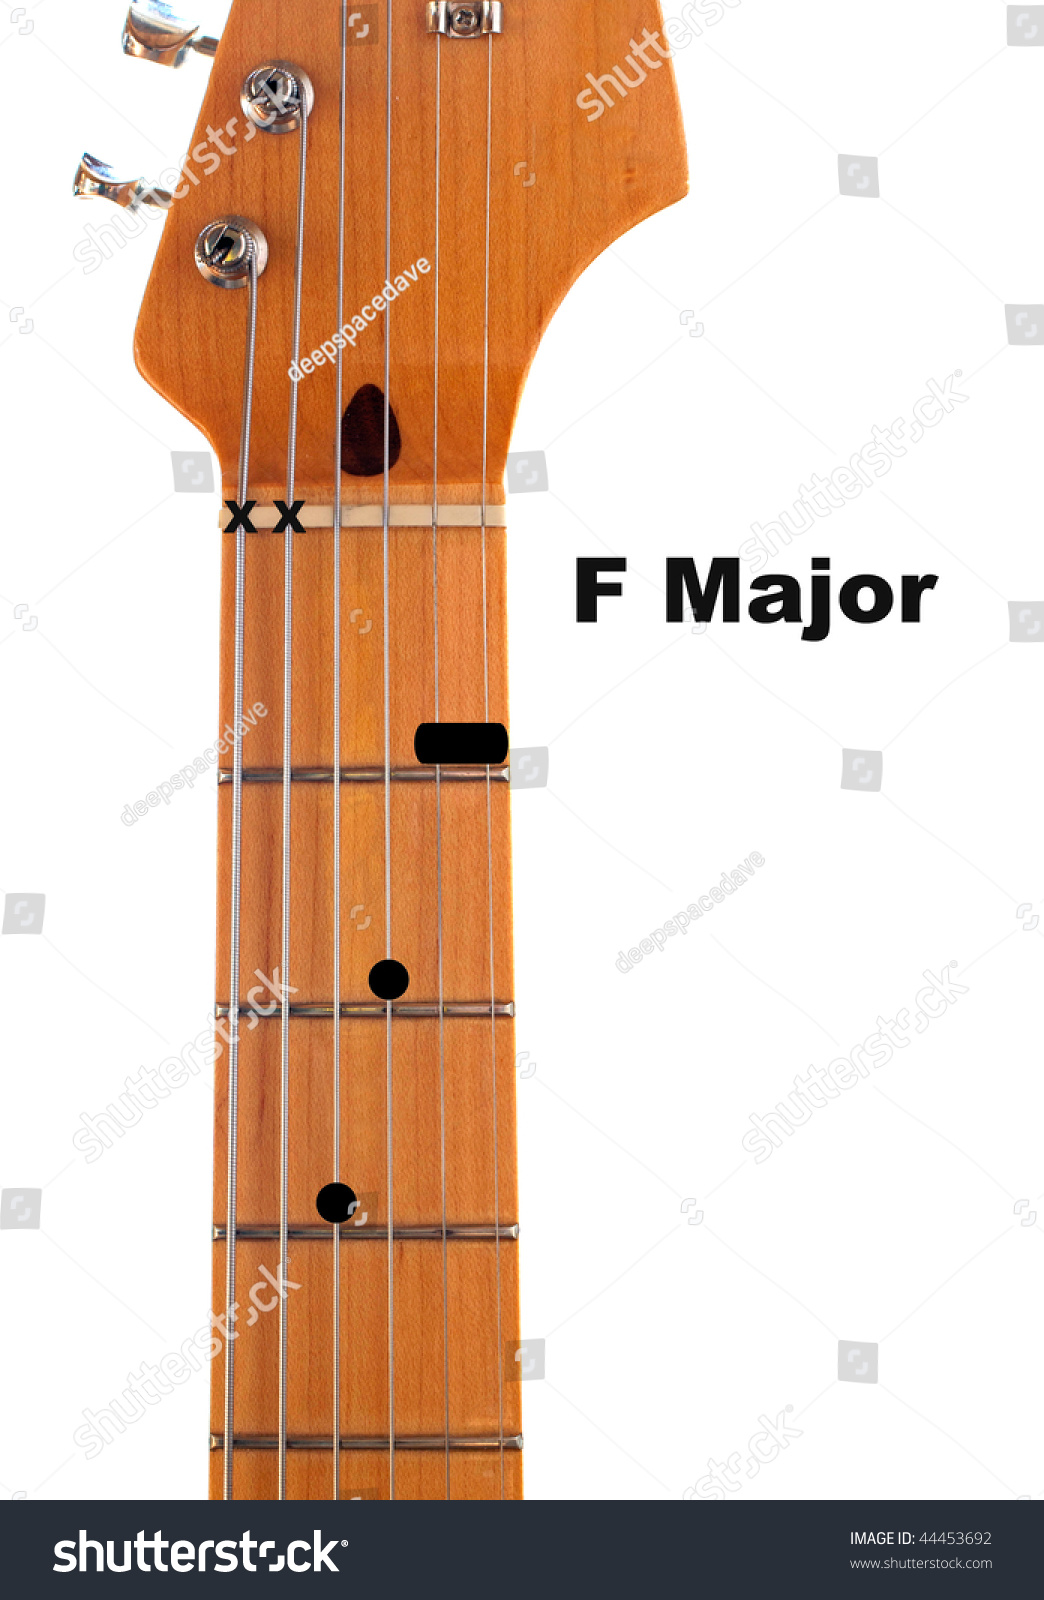 hight resolution of diagram of how to finger an f major guitar chord